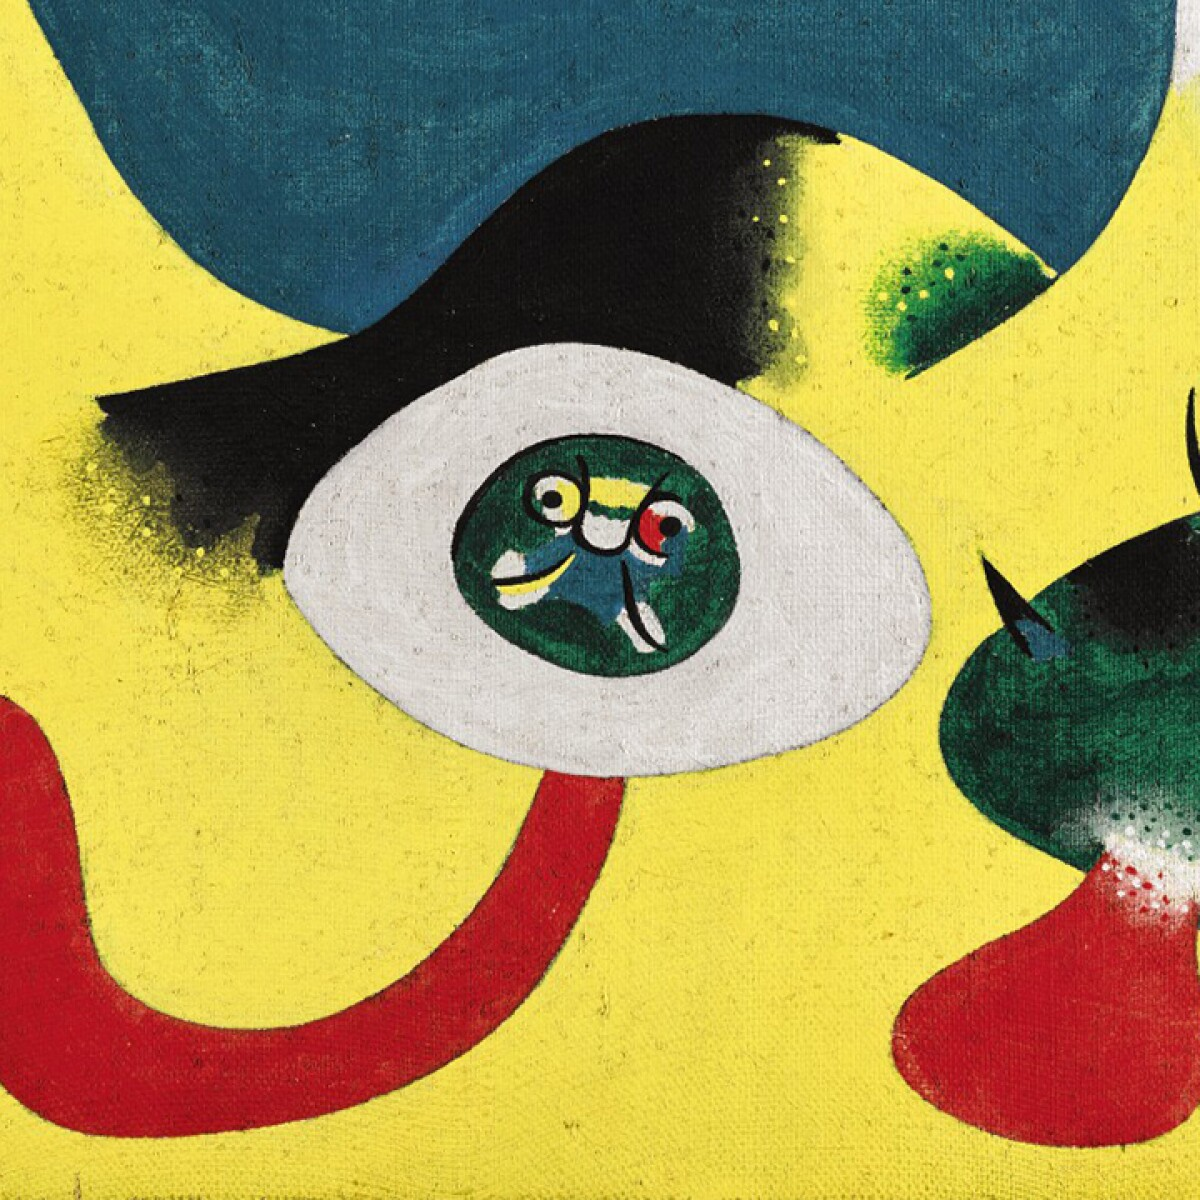 Joan Miró's Playful Creatures and Political Themes